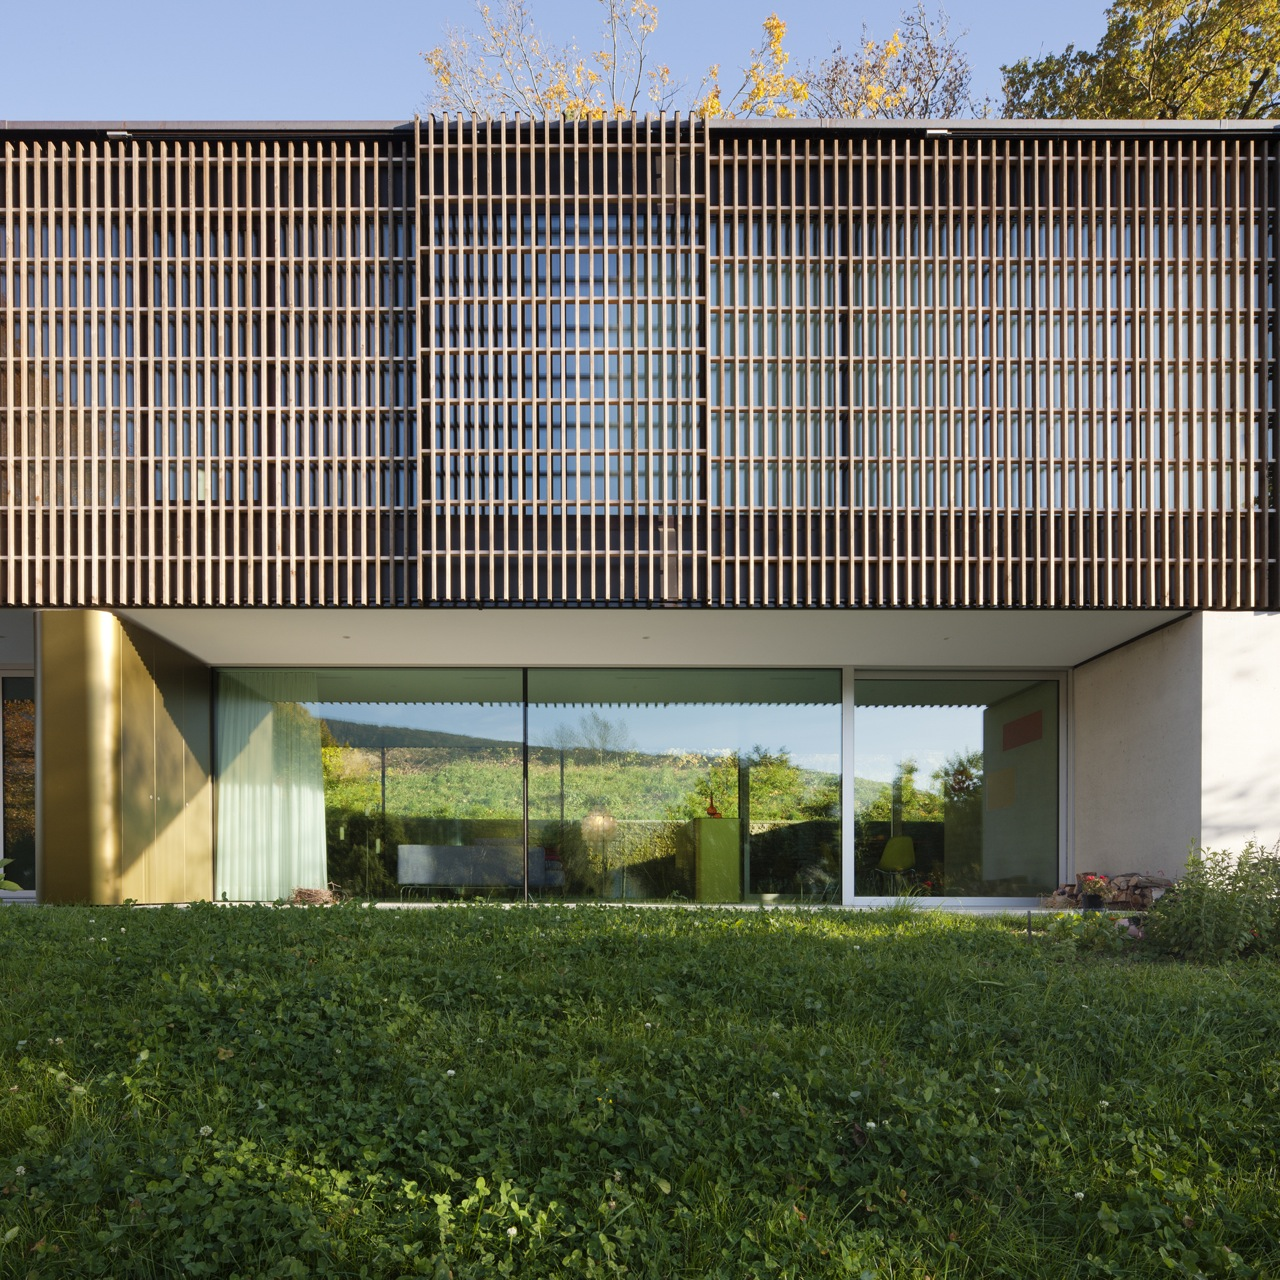 Single House Lake of Biel / bauzeit architekten, © Yves Andre